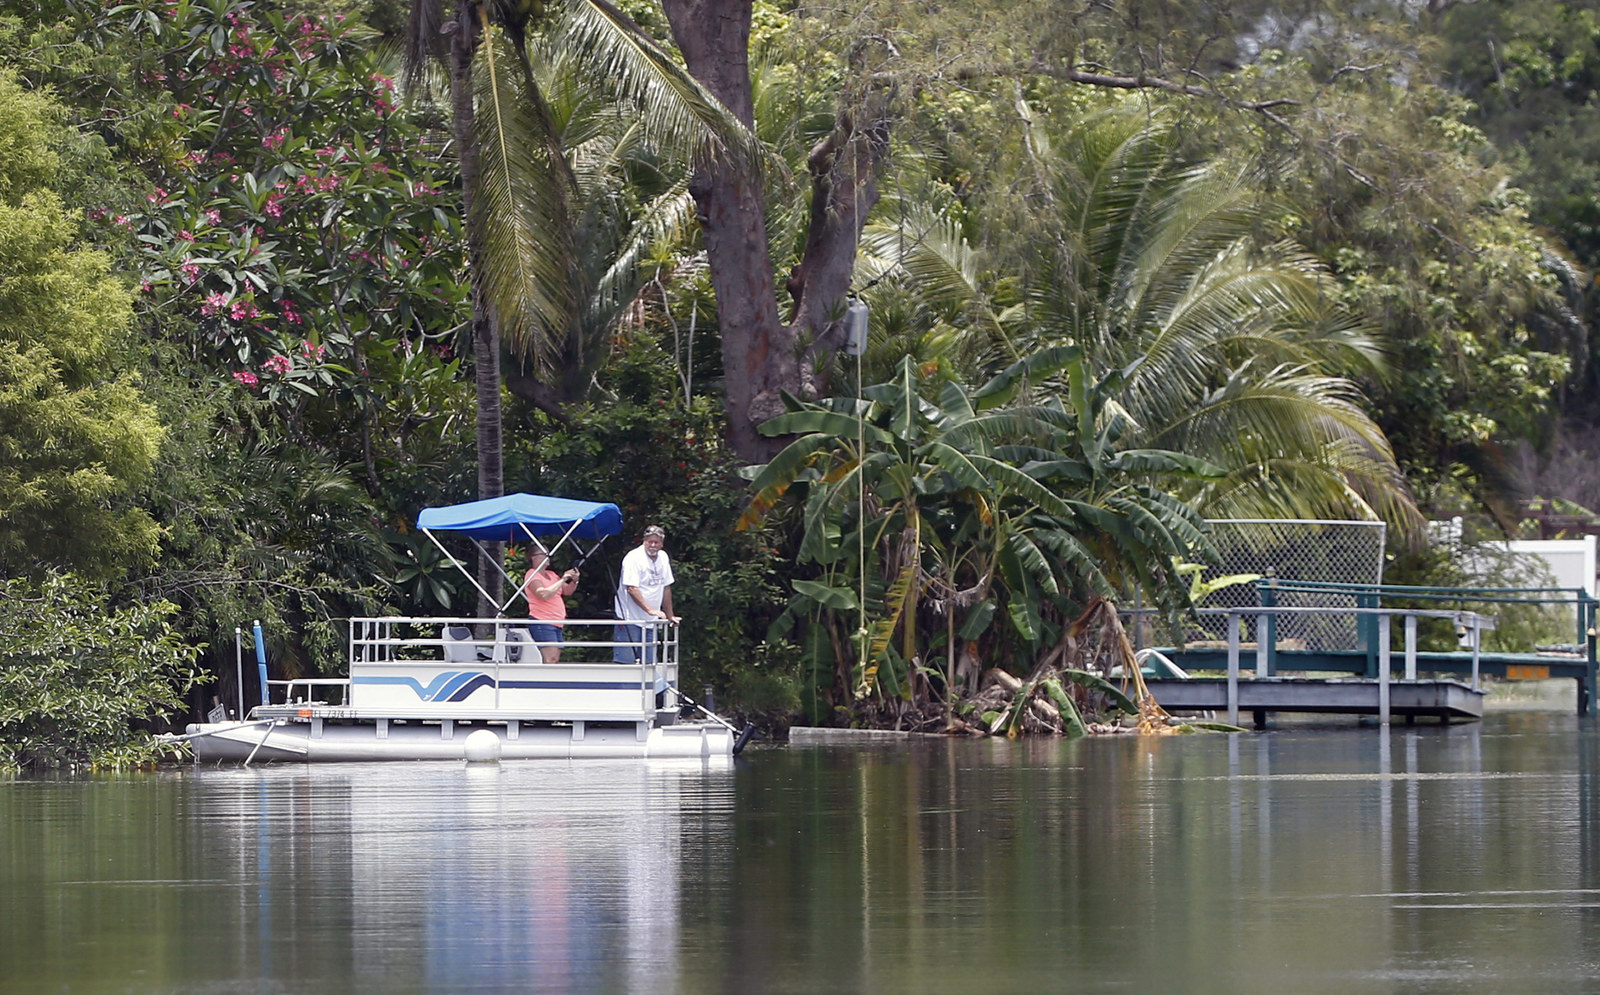 A couple looks out from a pontoon boat on one of the lakes at Silver Lakes Rotary Nature Park on June 8.